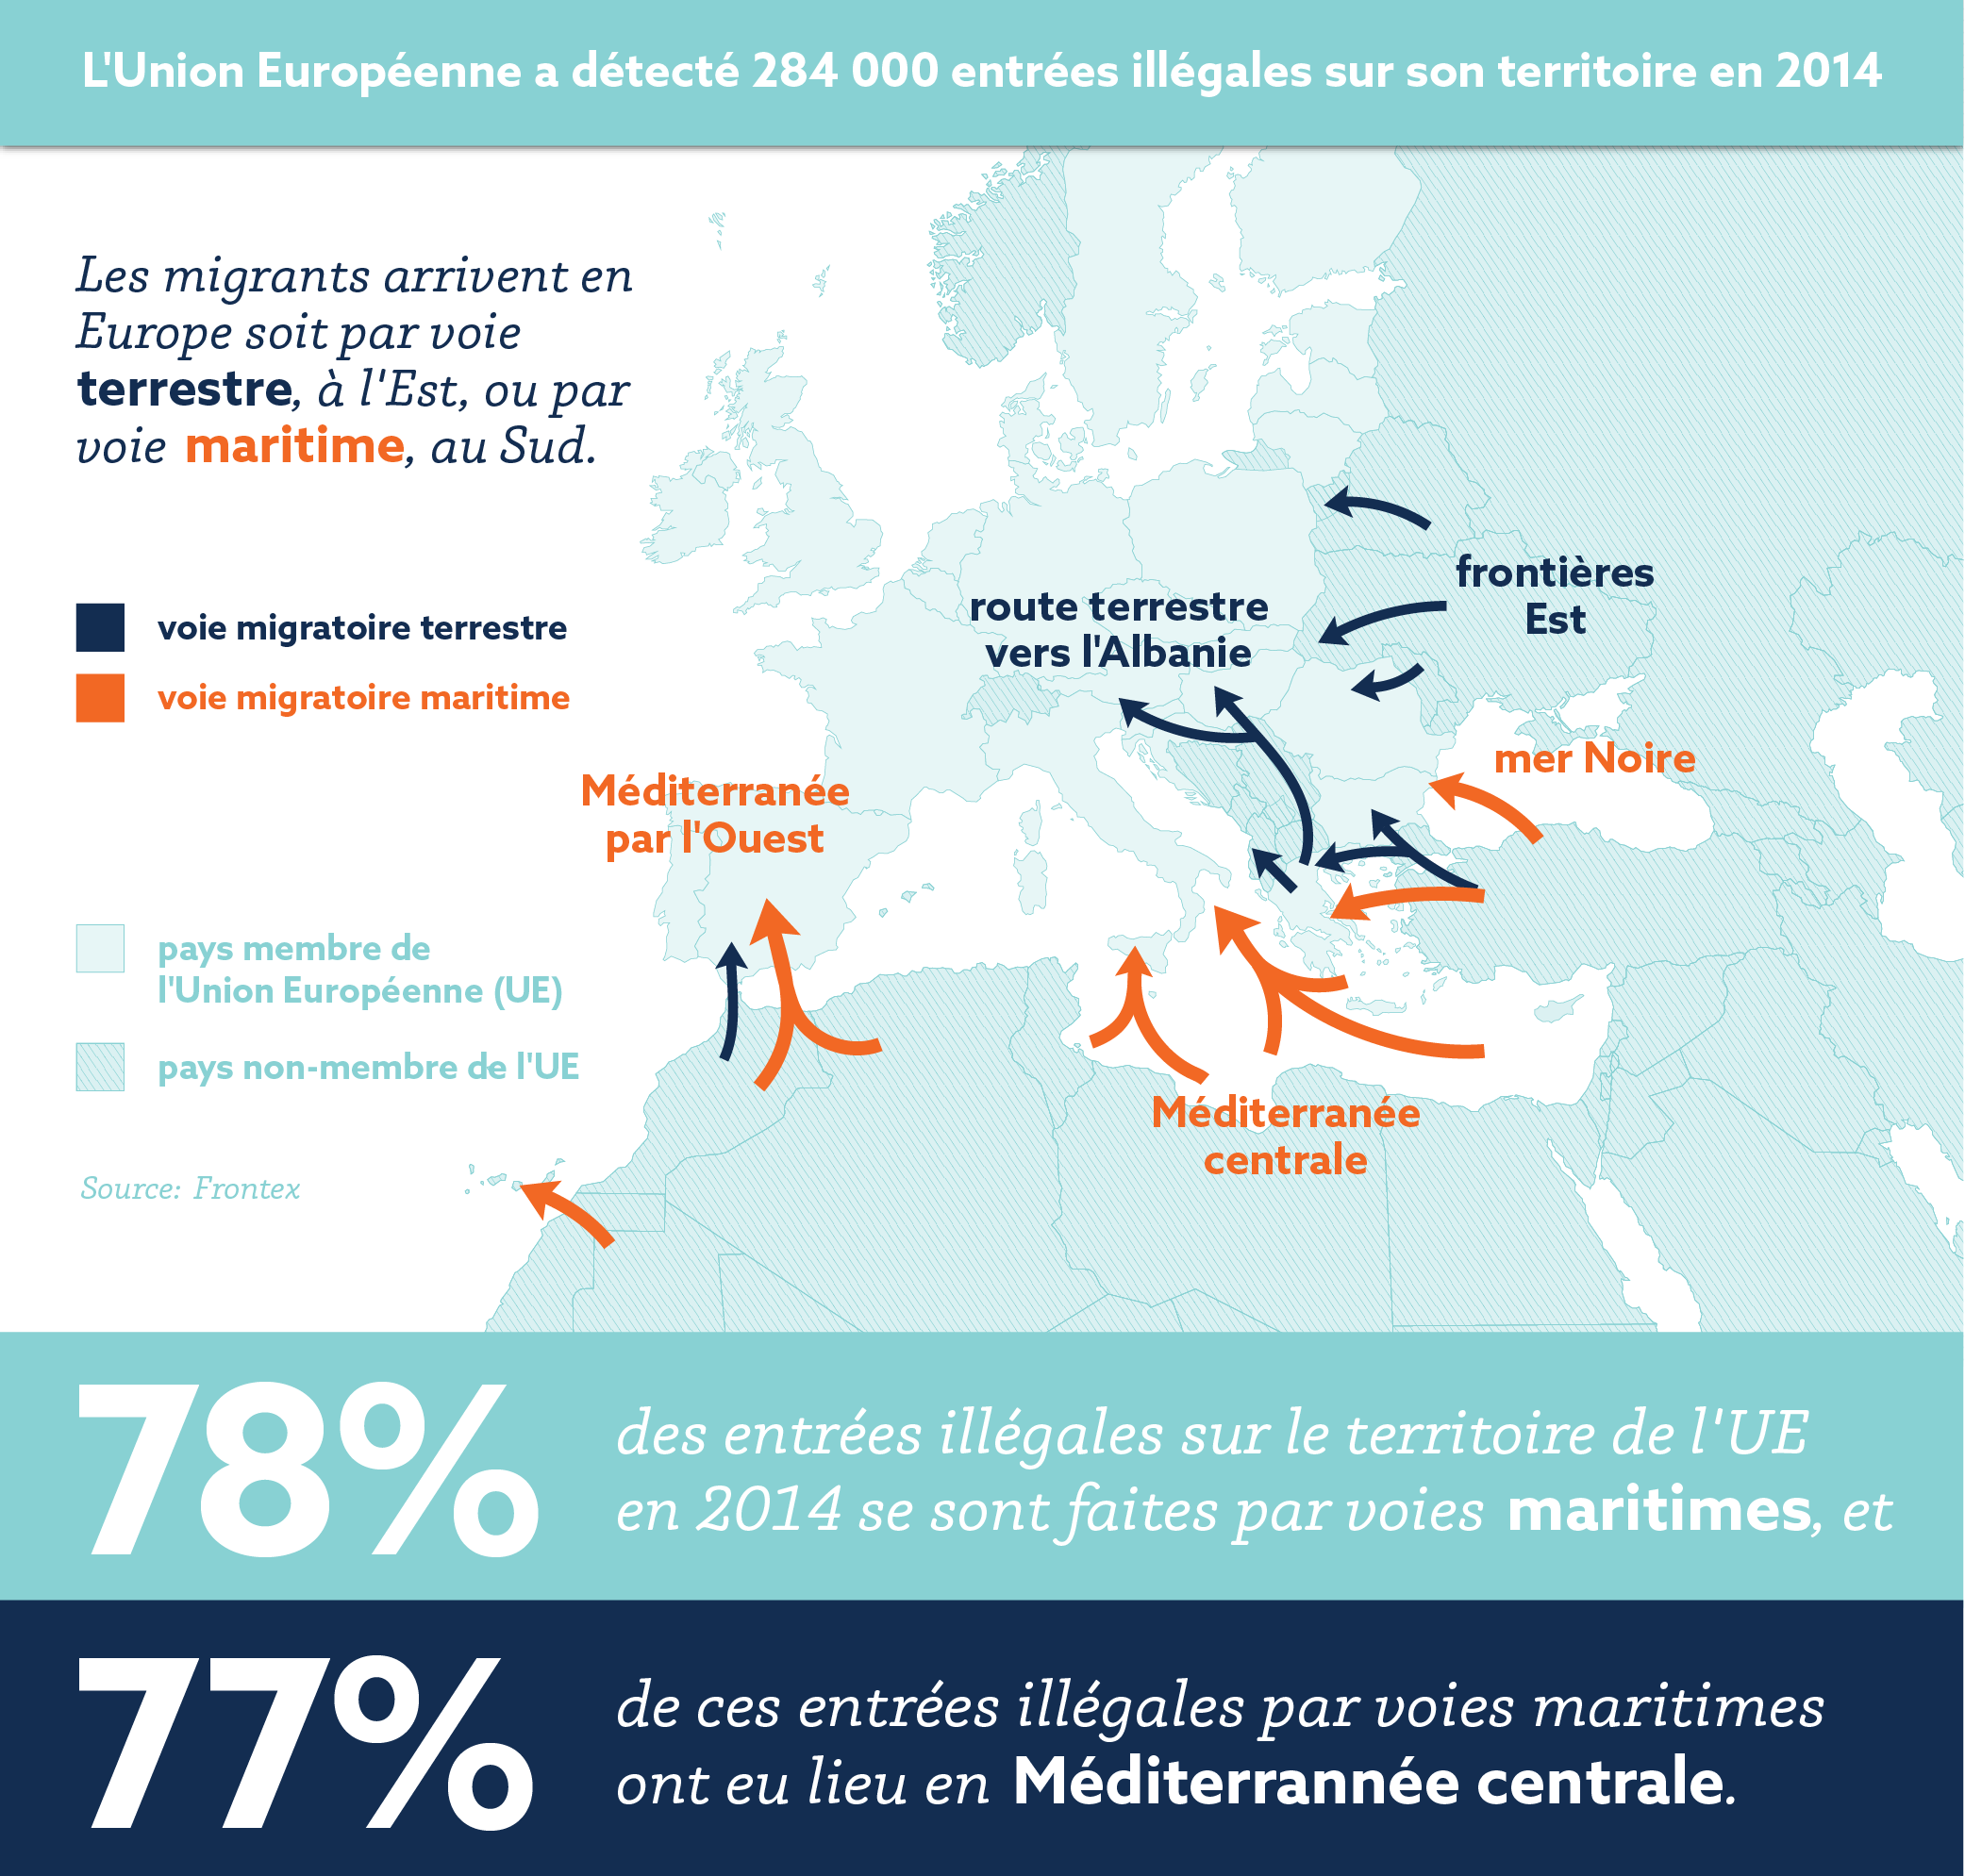 FRENCH_Migrants_Organized-02.png